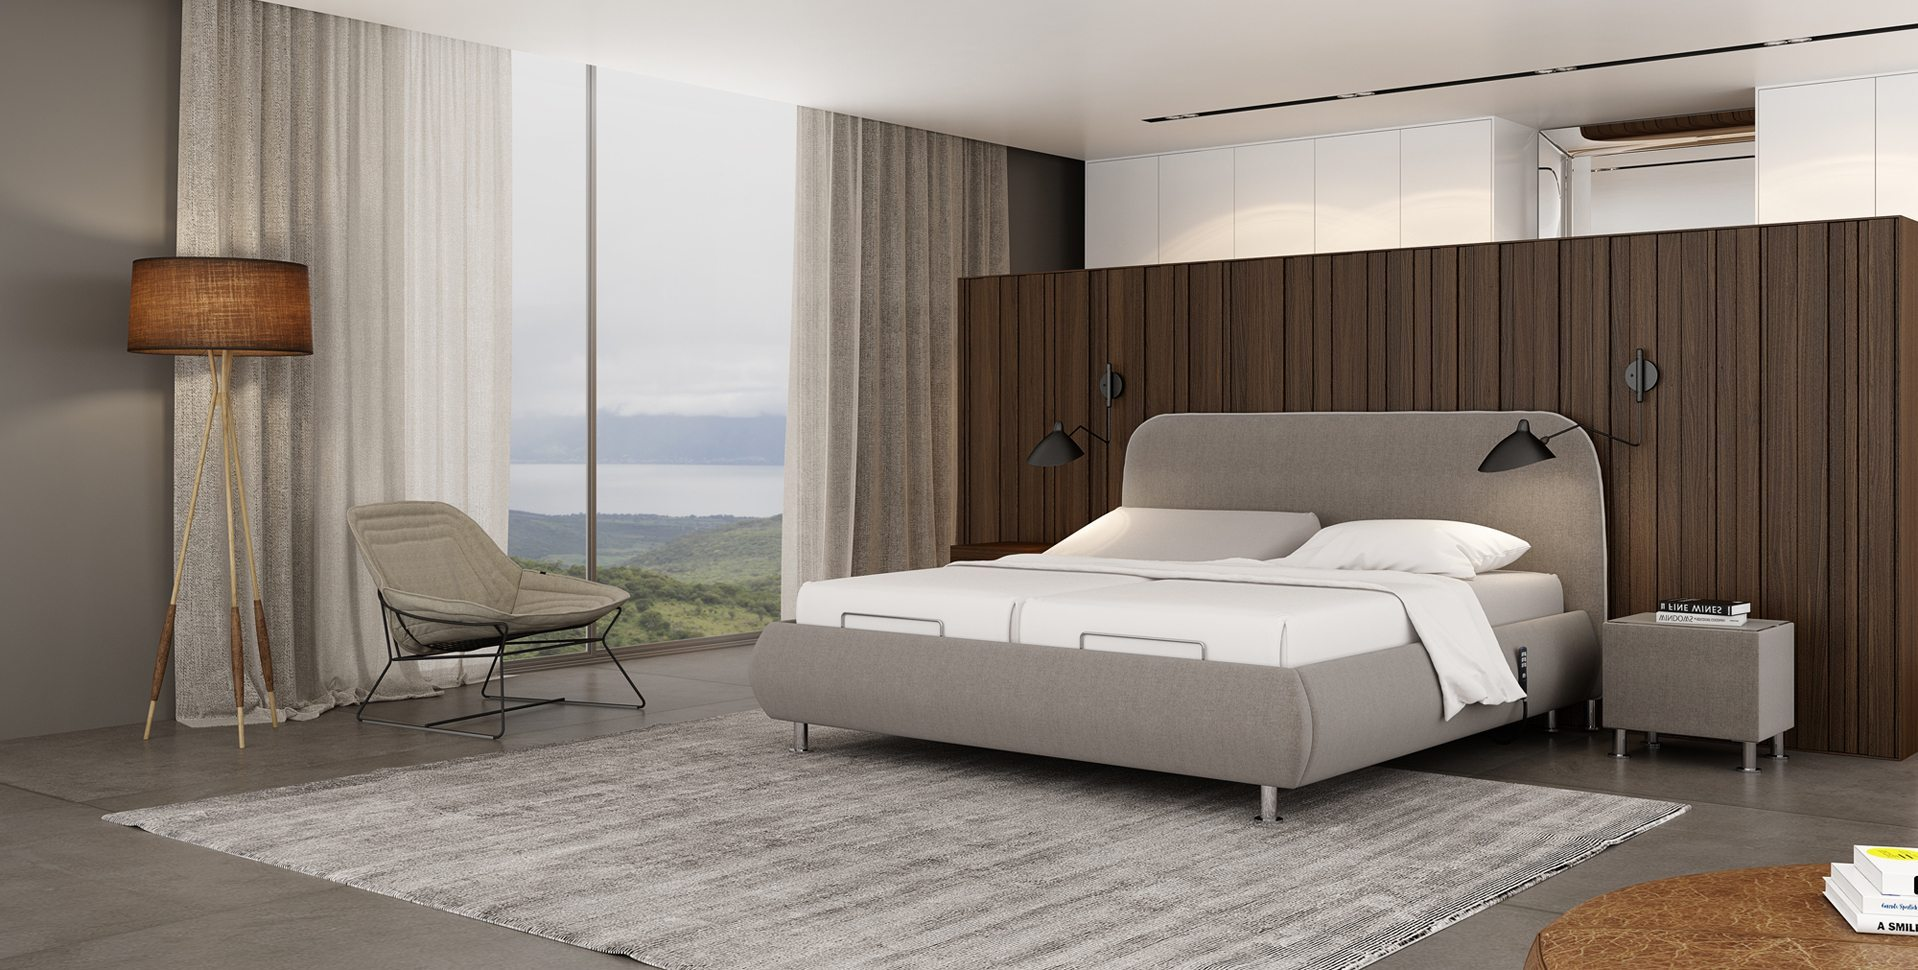 Product Visualization: Double Beds & Sleeping Systems